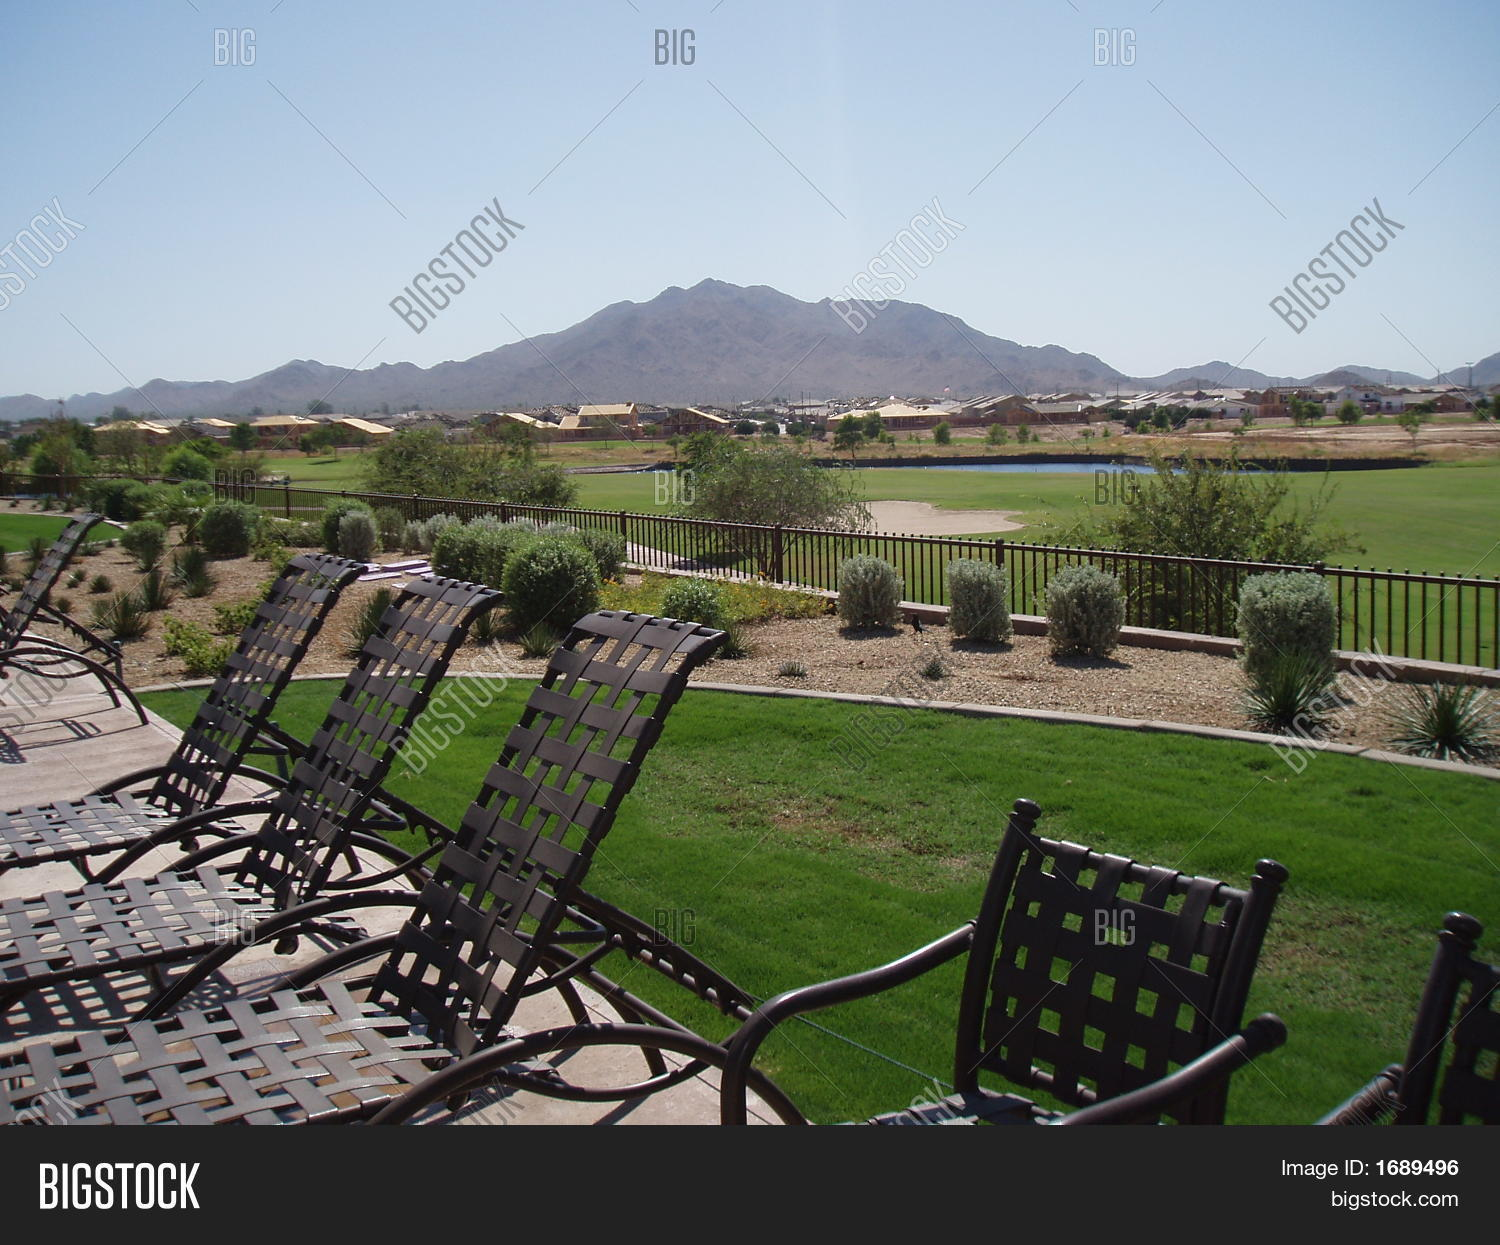 active,arizona,ball,cart,clouds,club,compete,competition,country,course,desert,divot,drive,exercise,fairway,feature,field,follow,form,game,golf,golfer,grass,green,greenery,hit,hobby,horizon,lake,landscape,leisure,life,links,man,muontains,natural,nature,outdoor,par,park,play,player,pool,practice,recreation,relax,retire,retirement,rough,scenery,scenic,score,senior,sky,skyline,sport,swing,tee,trees,vacation,water